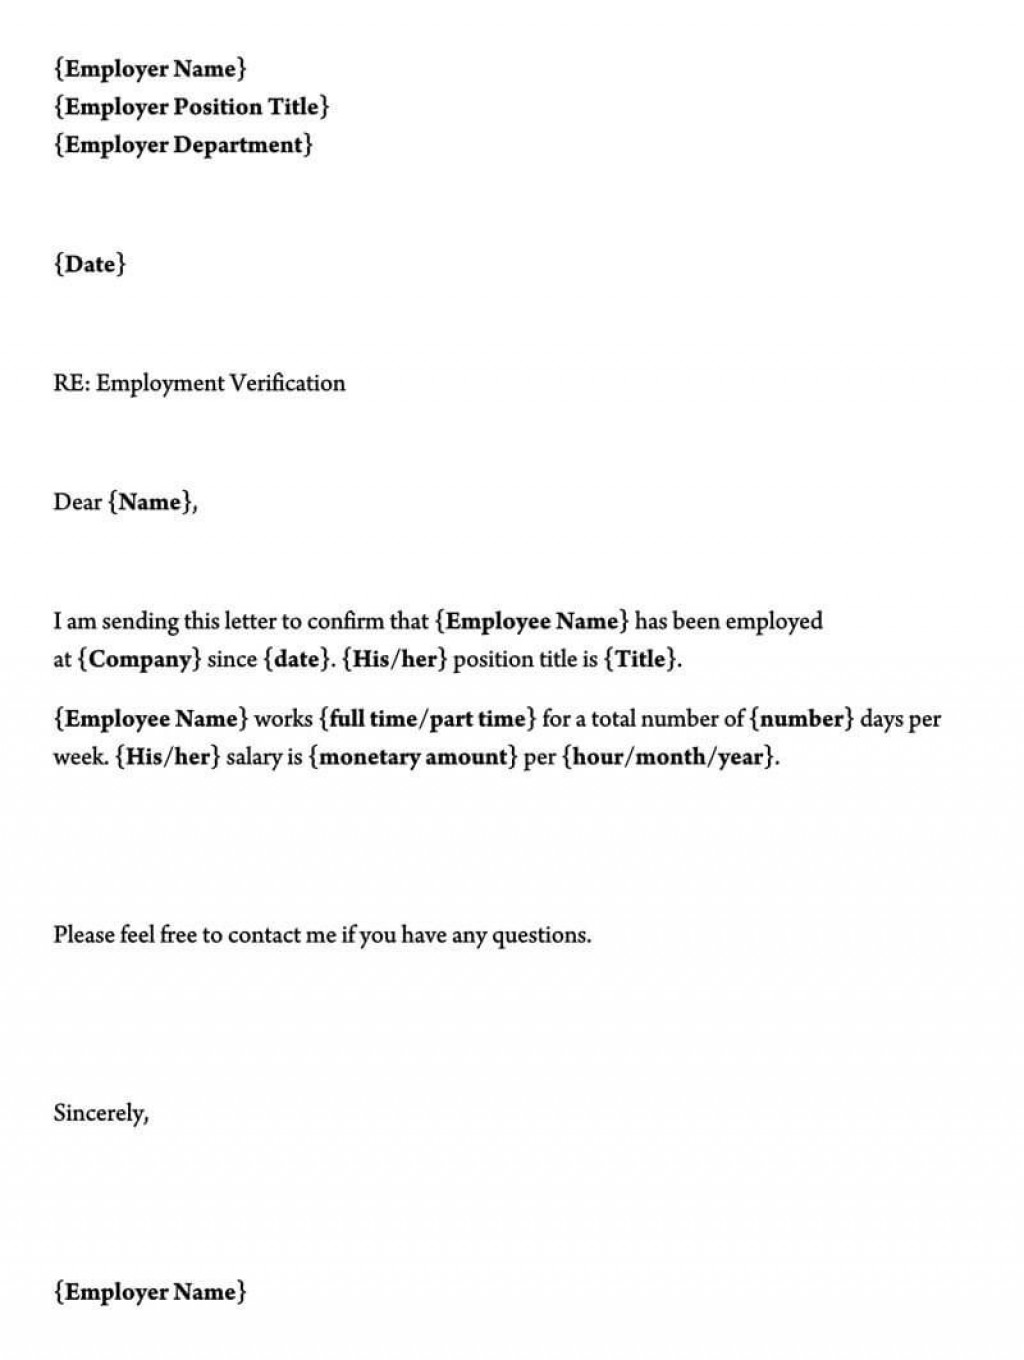 003 Sensational Letter Of Employment Template Concept  Confirmation Canada For MortgageLarge